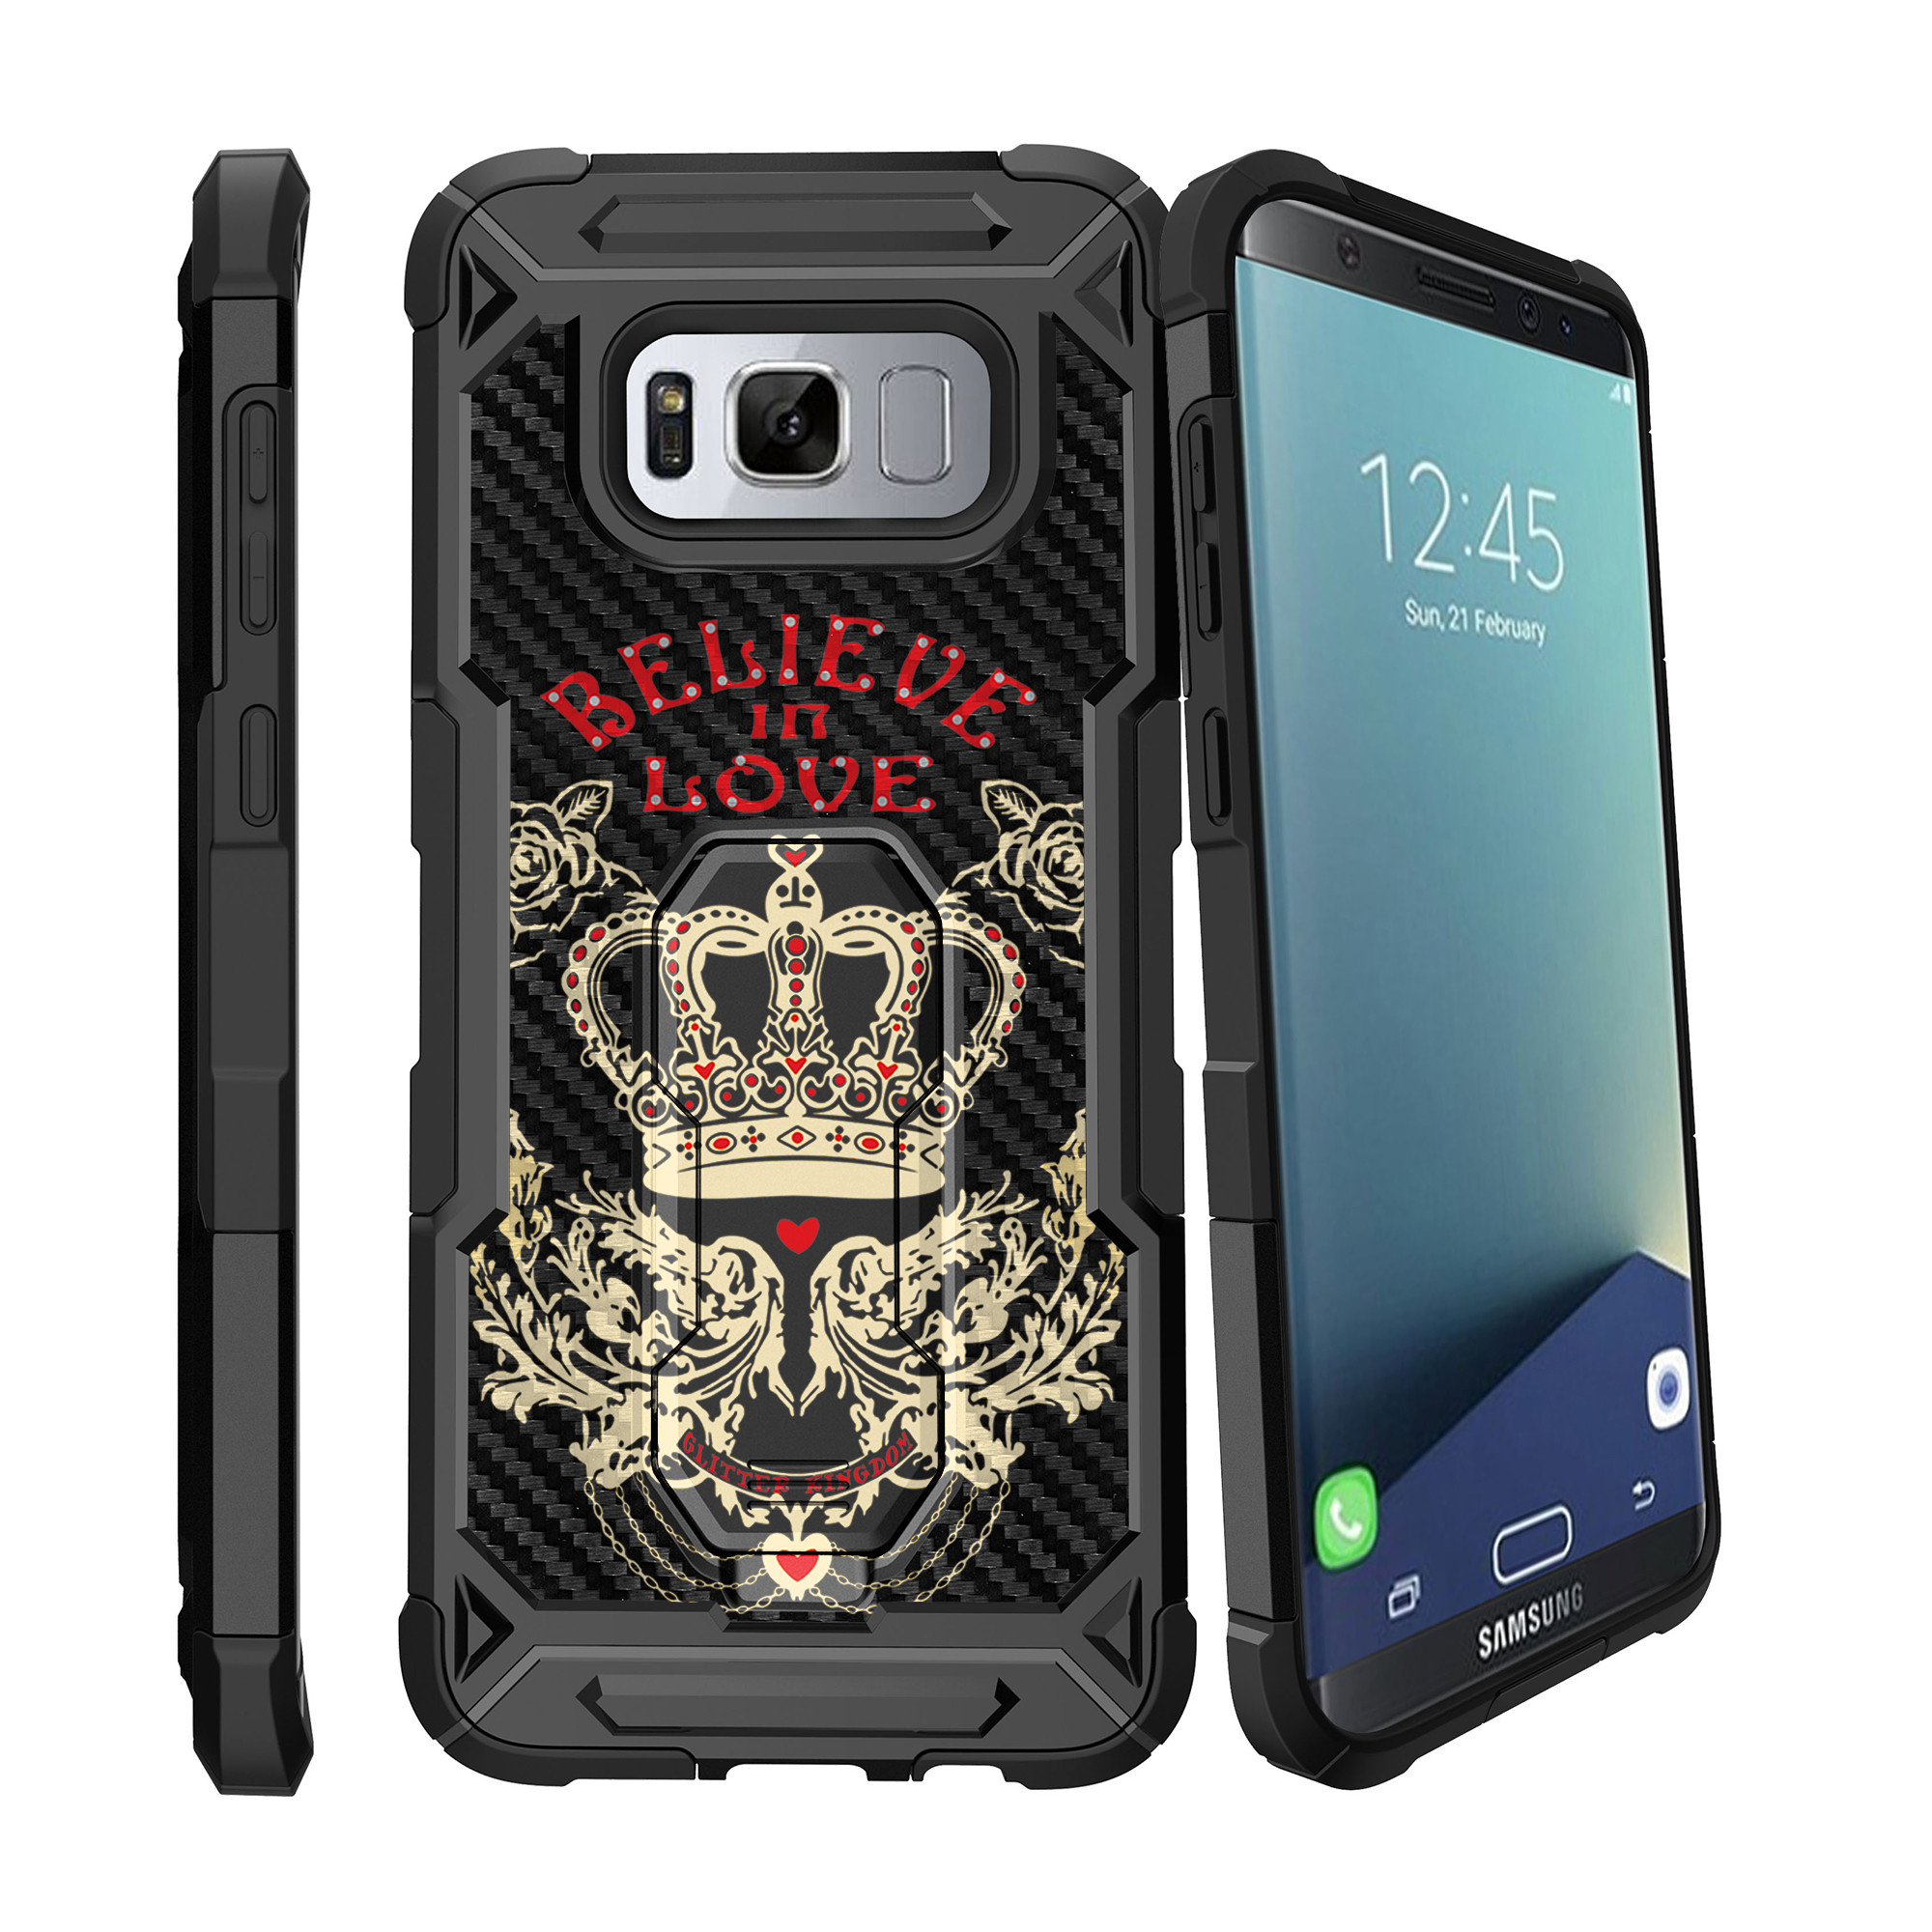 Case for Samsung Galaxy S8 Plus Version [ UFO Defense Case ][Galaxy S8 PLUS SM-G955][Black Silicone] Carbon Fiber Texture Case with Holster + Stand Unique Designs Series